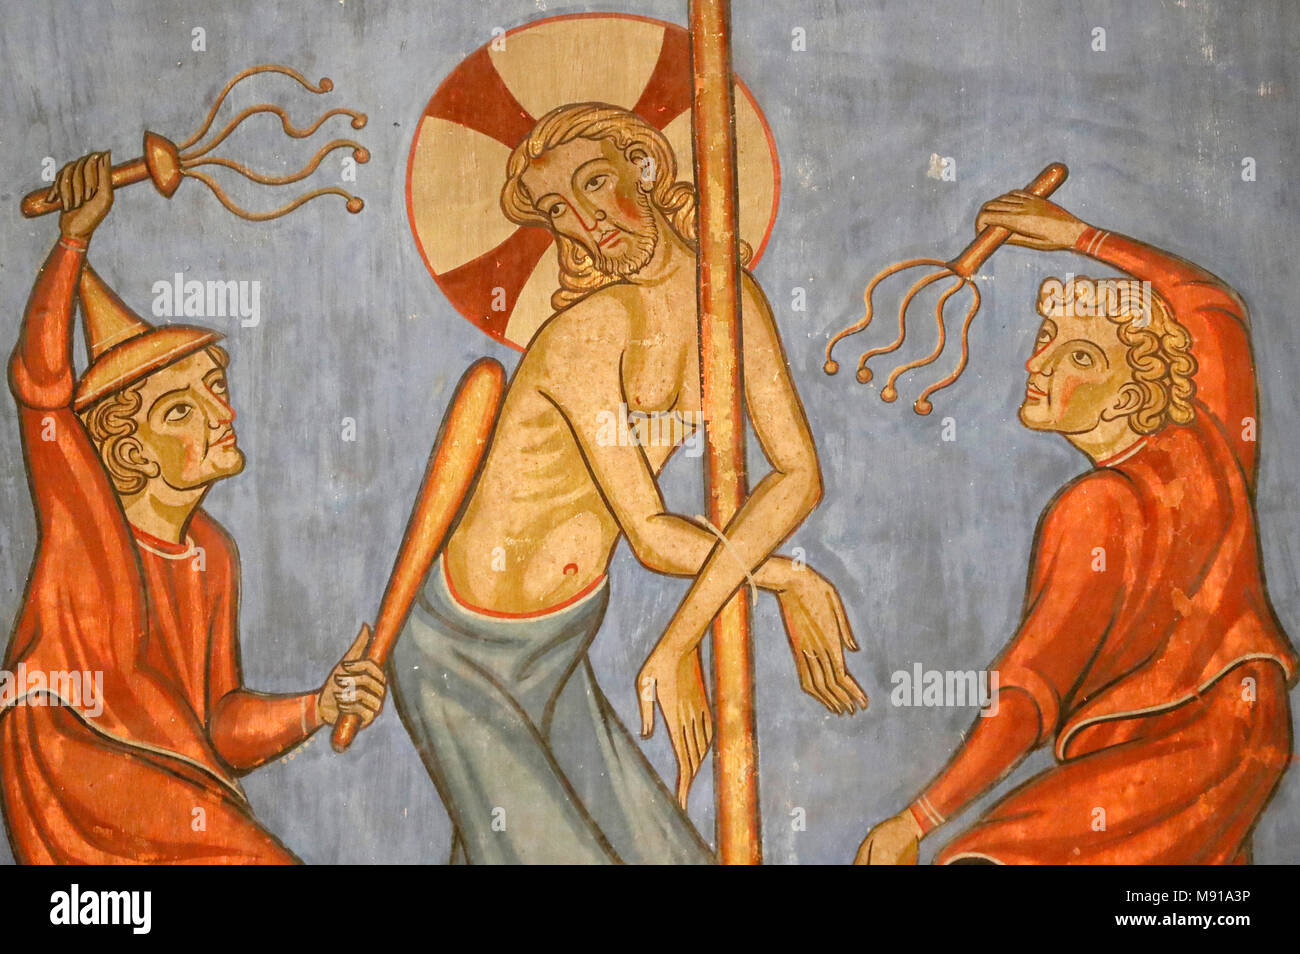 Saint-Pierre-le-Jeune Protestant Church.  Passion of Christ.  The Flagellation of Christ. Fresco.  Strasbourg. France. - Stock Image